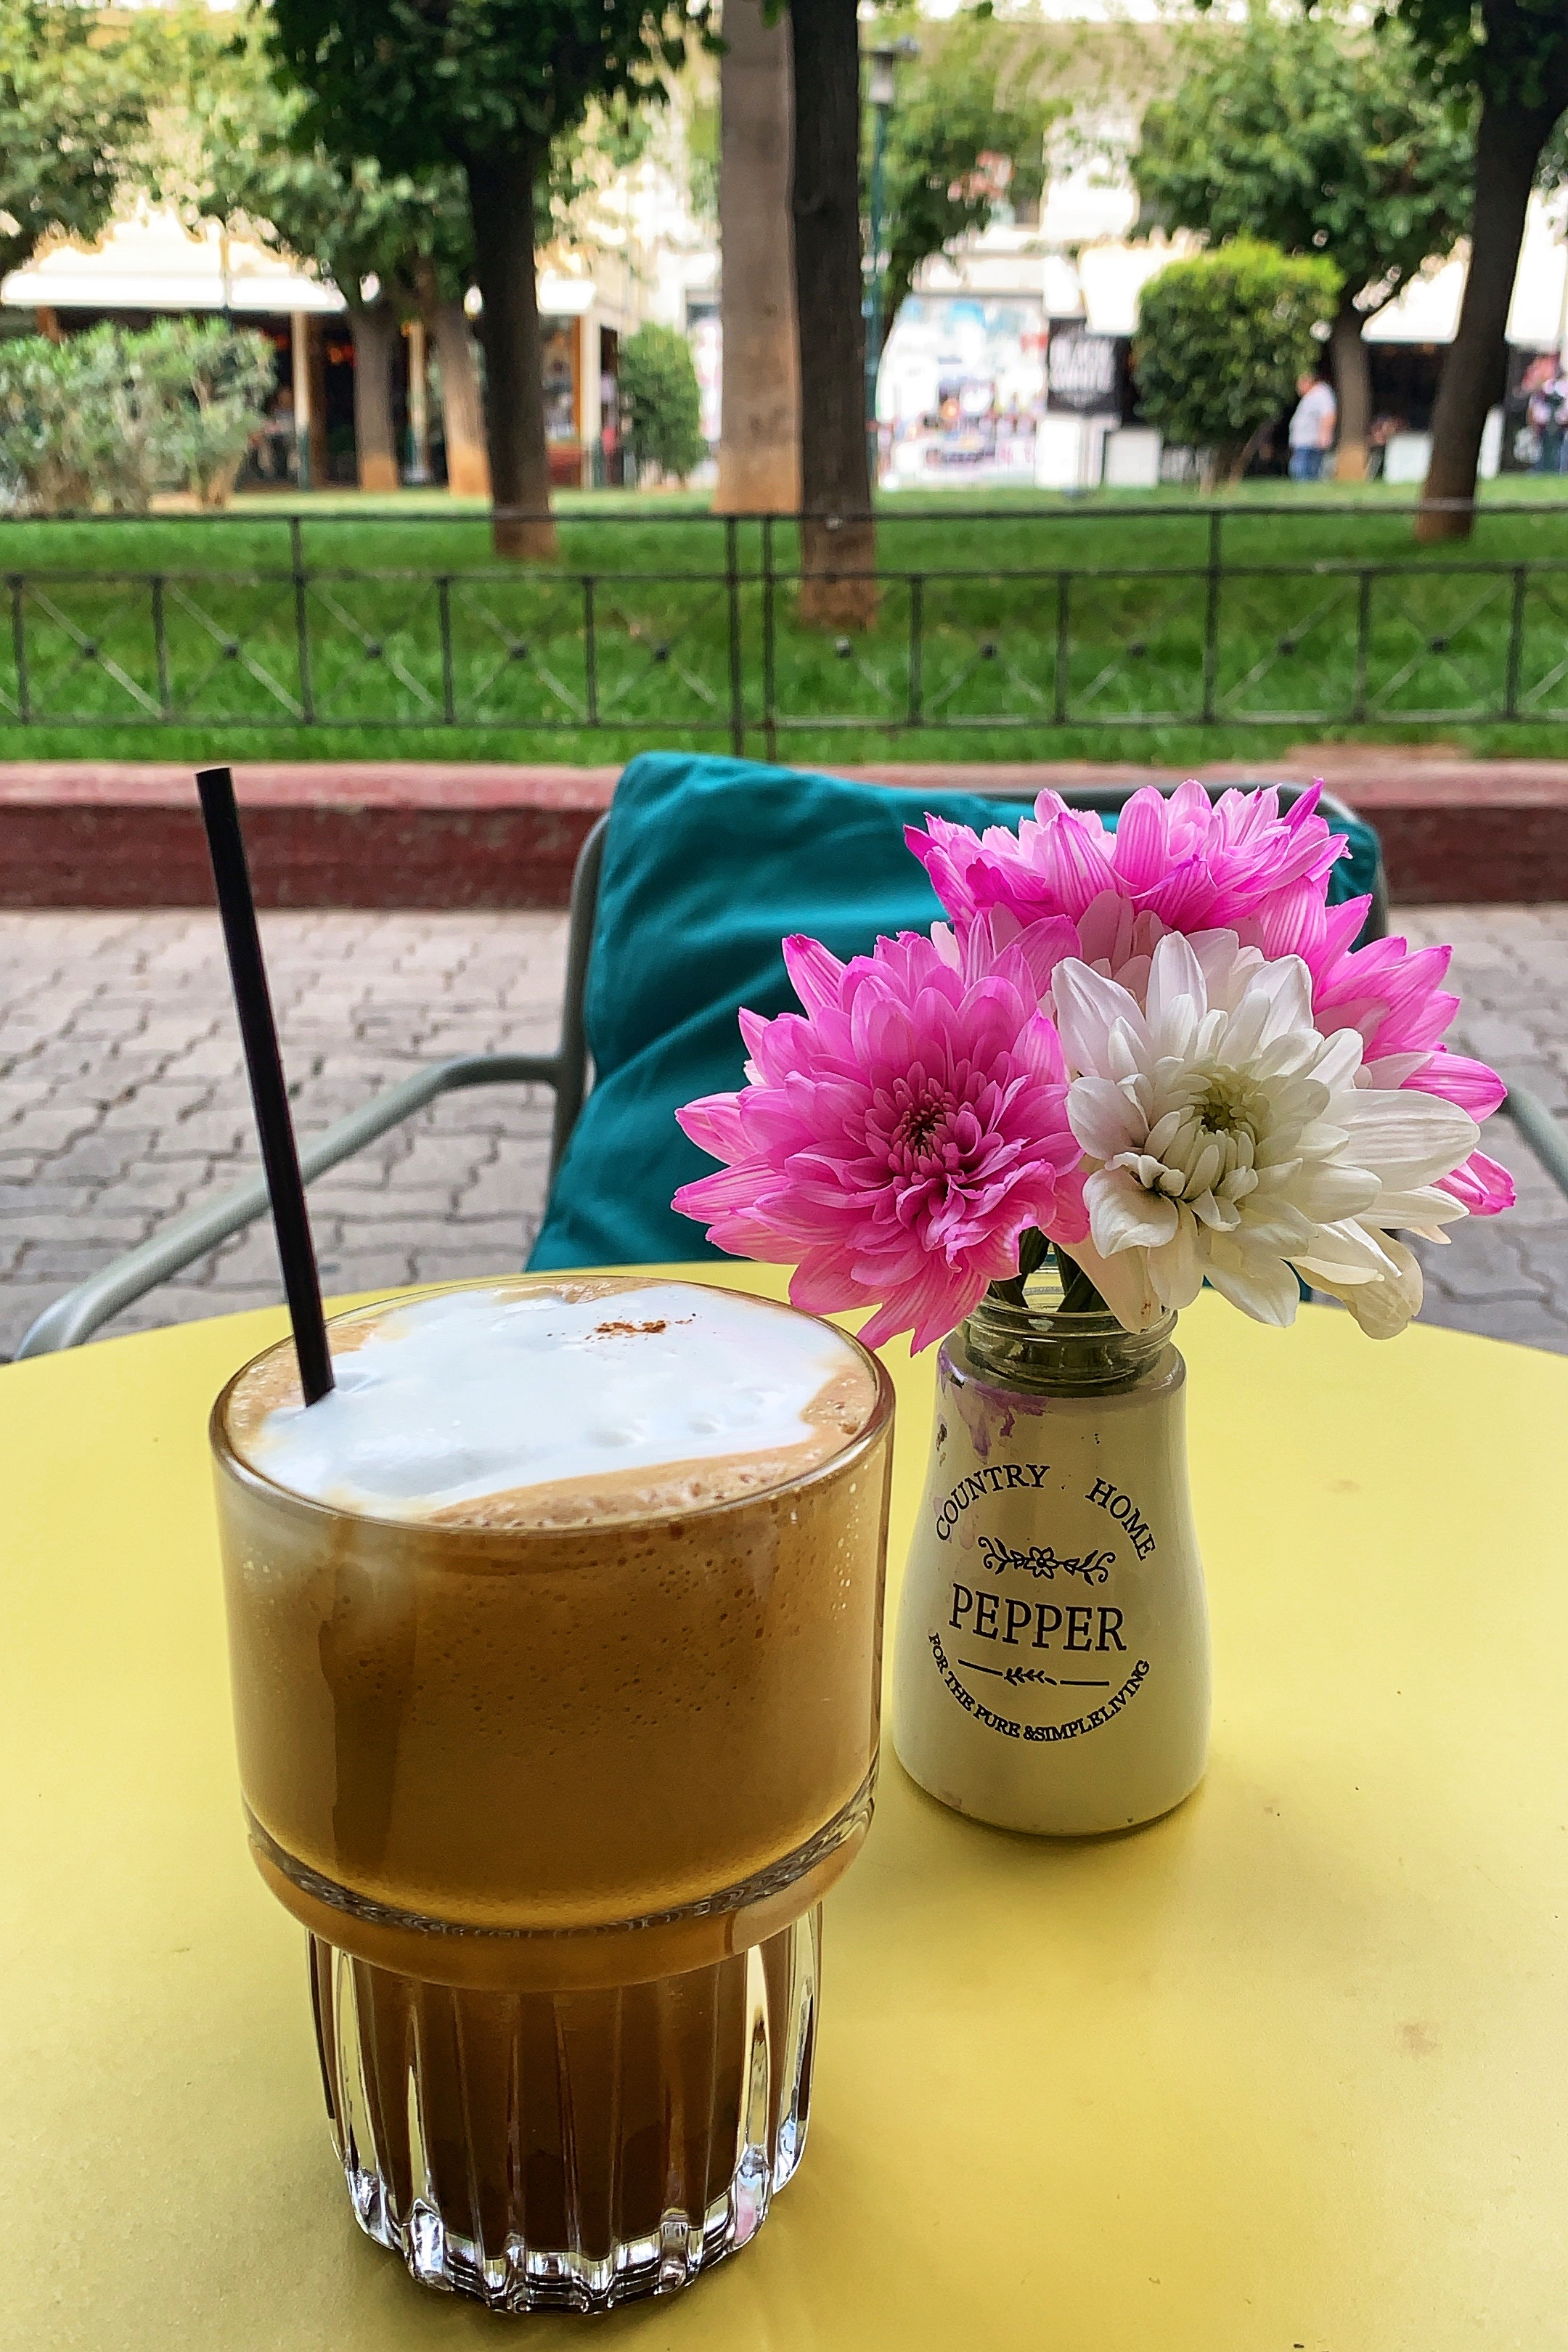 An iced coffee cappuccino at a cafe in Athens Greece